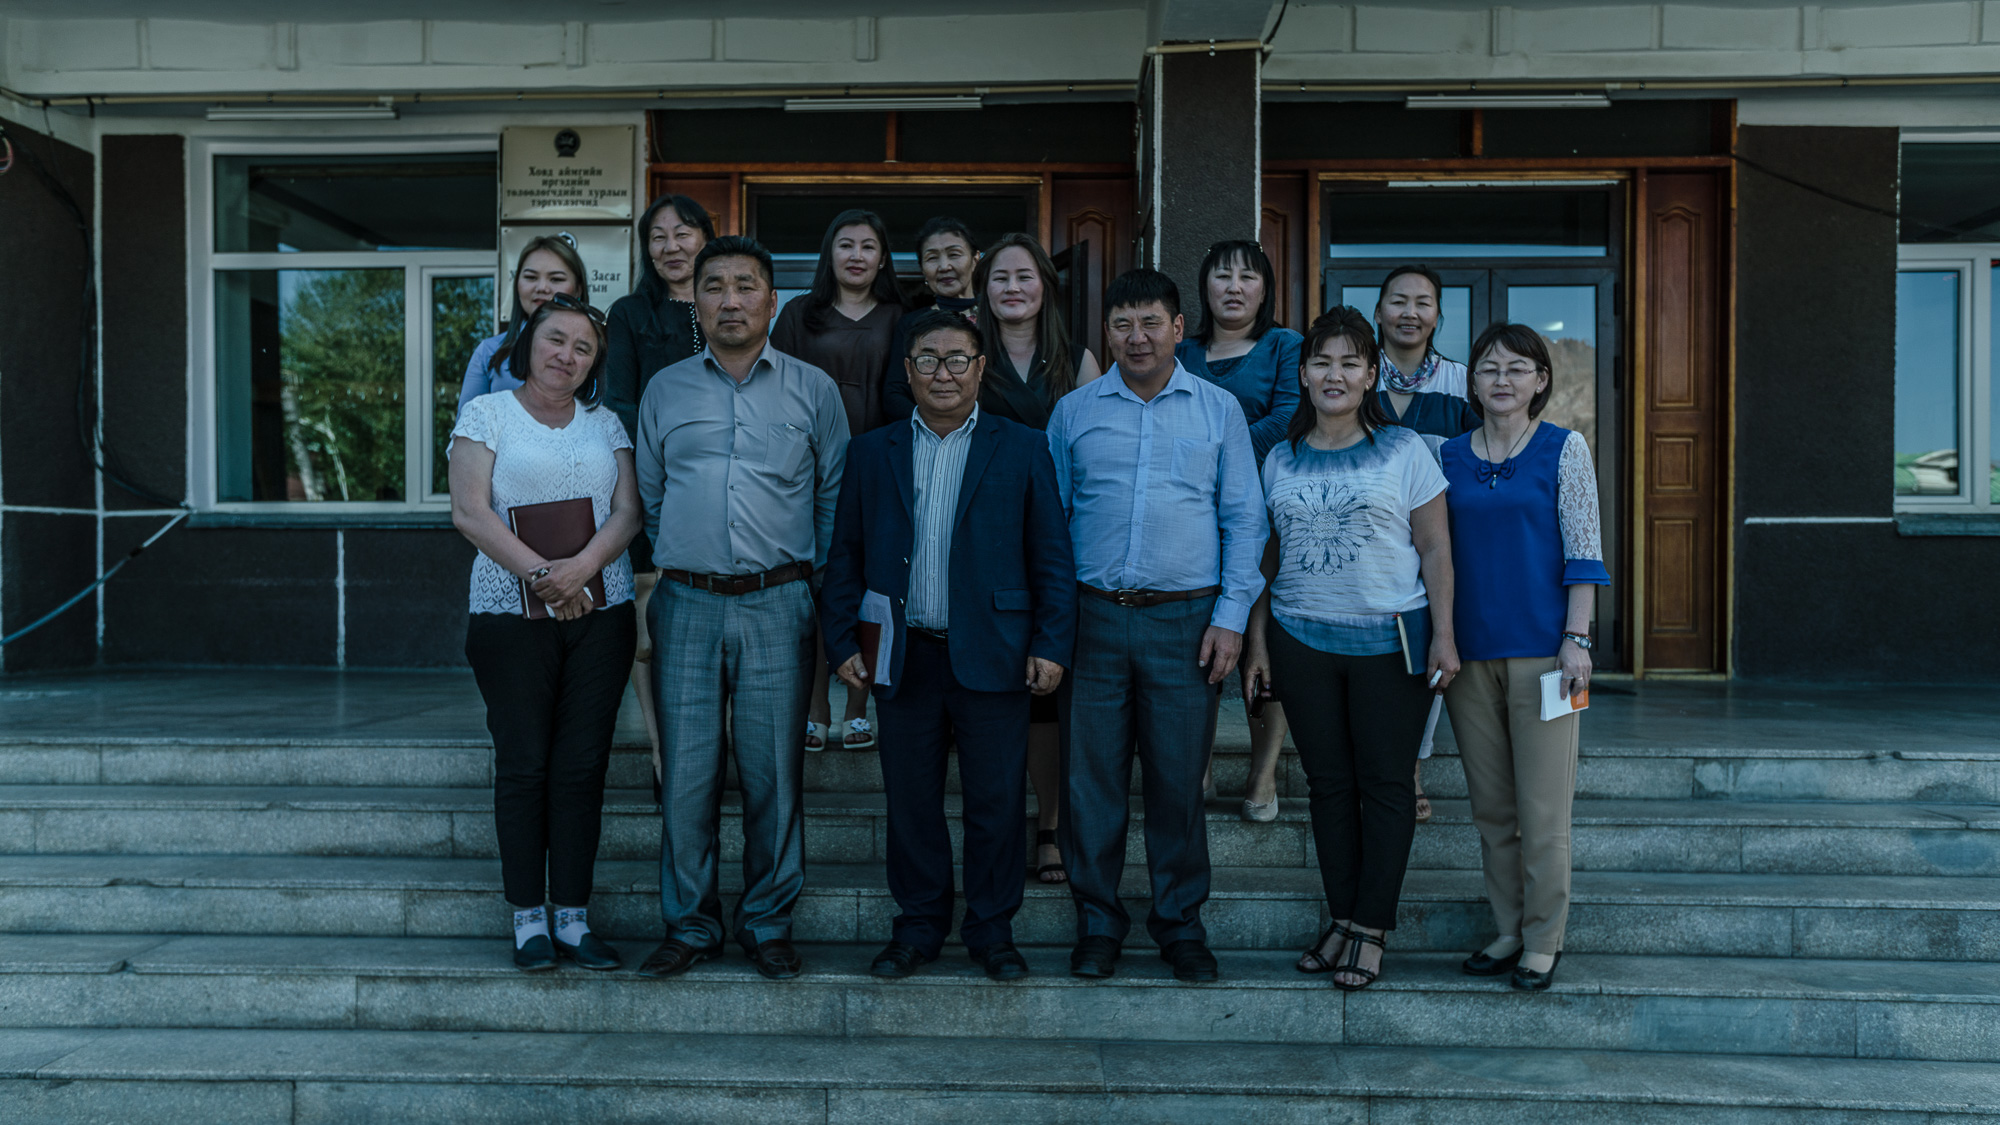 KHOVD, MONGOLIA - JUNE 14, 2018: A meeting of local stakeholders led by Mr. Narandorj (Deputy Head of Education Agency) in Khovd. Together, they worked with the local community  to improve the school services provided by the government to 10 schools. Footage by Morgana Wingard for OGP